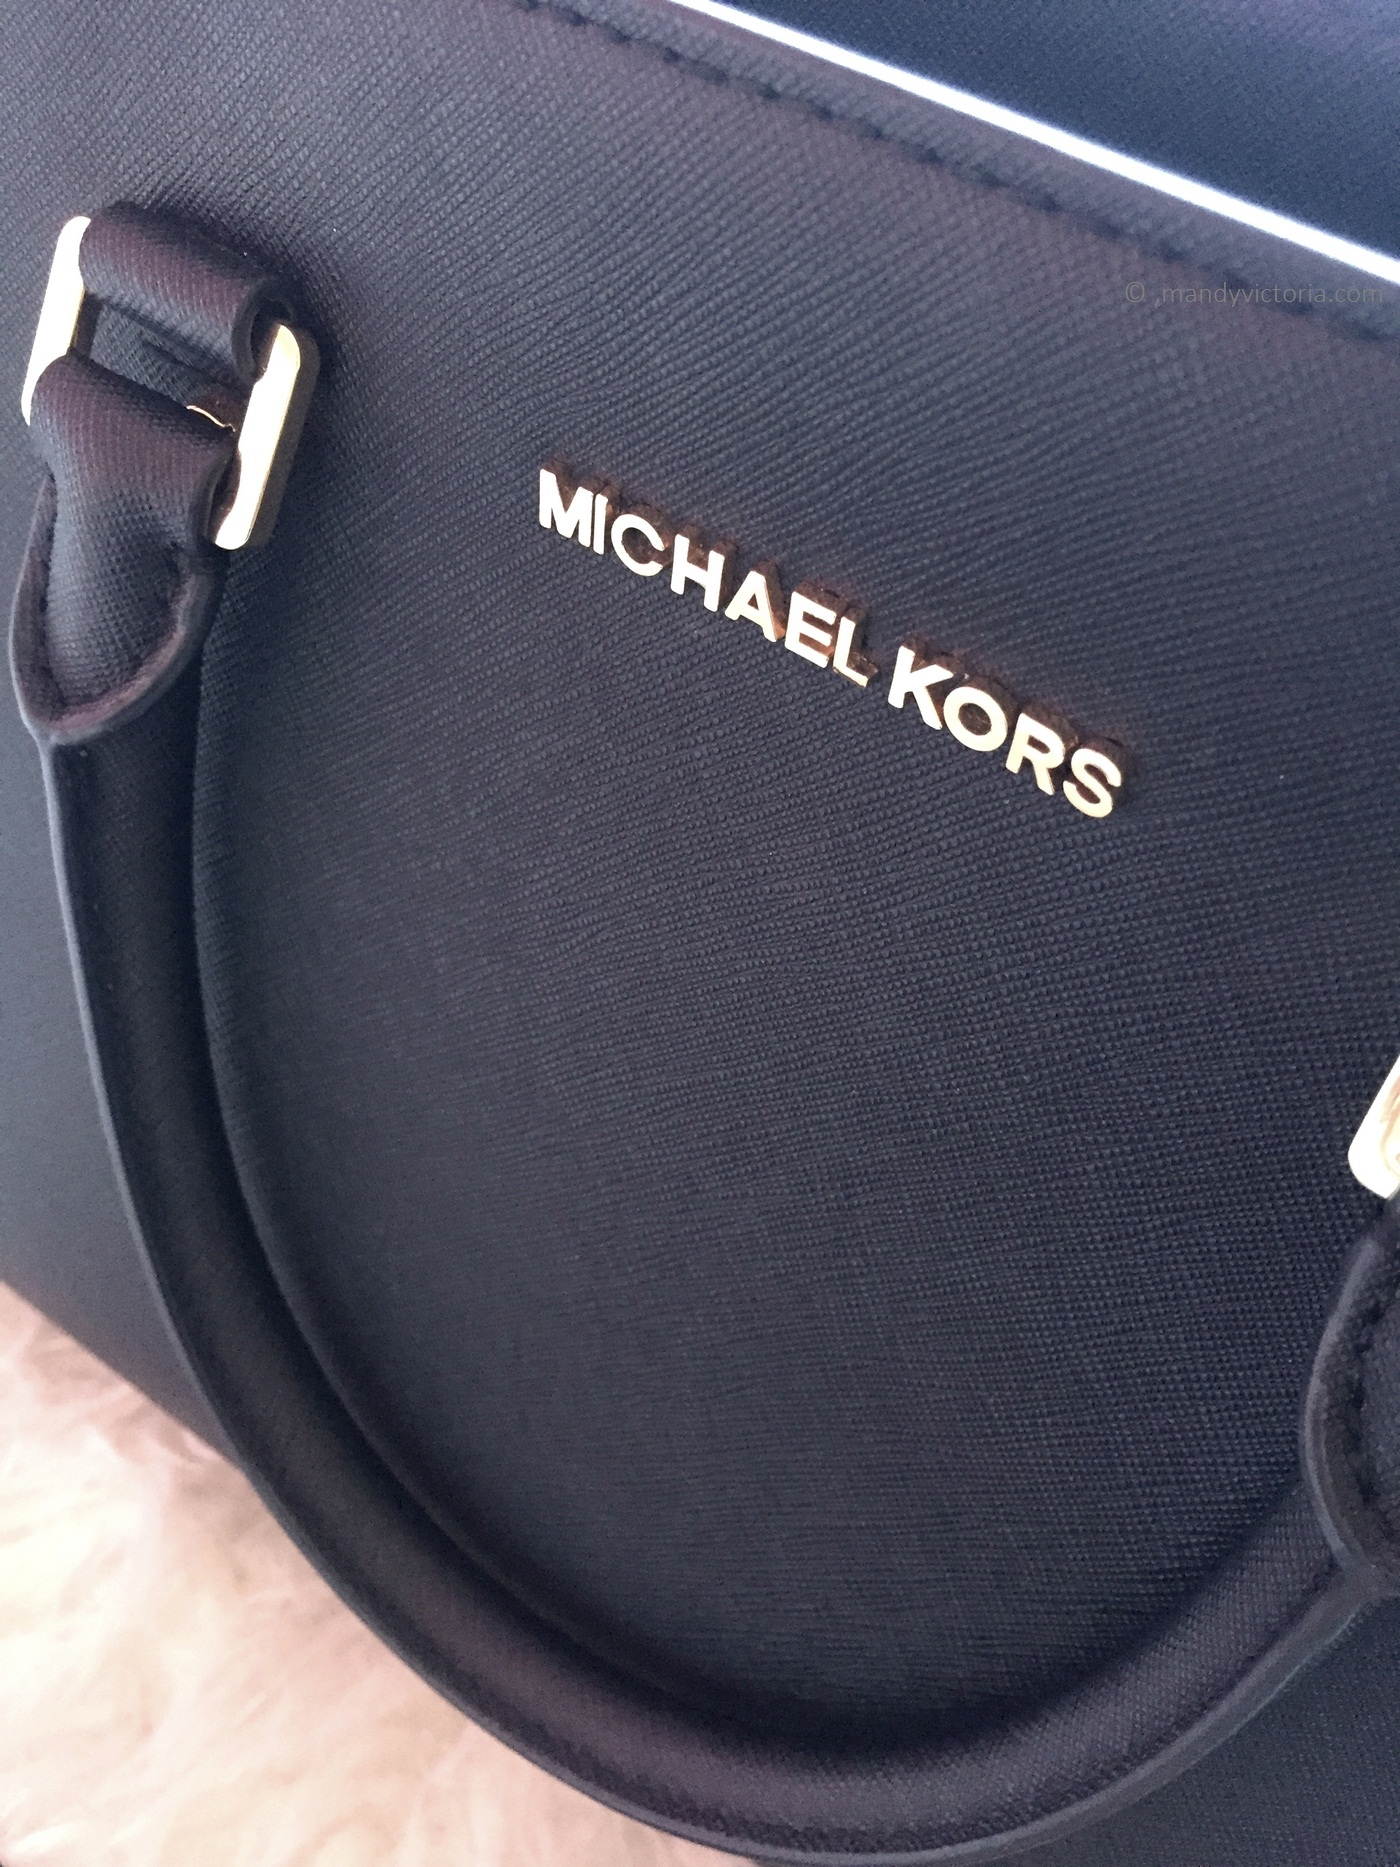 michael kors side